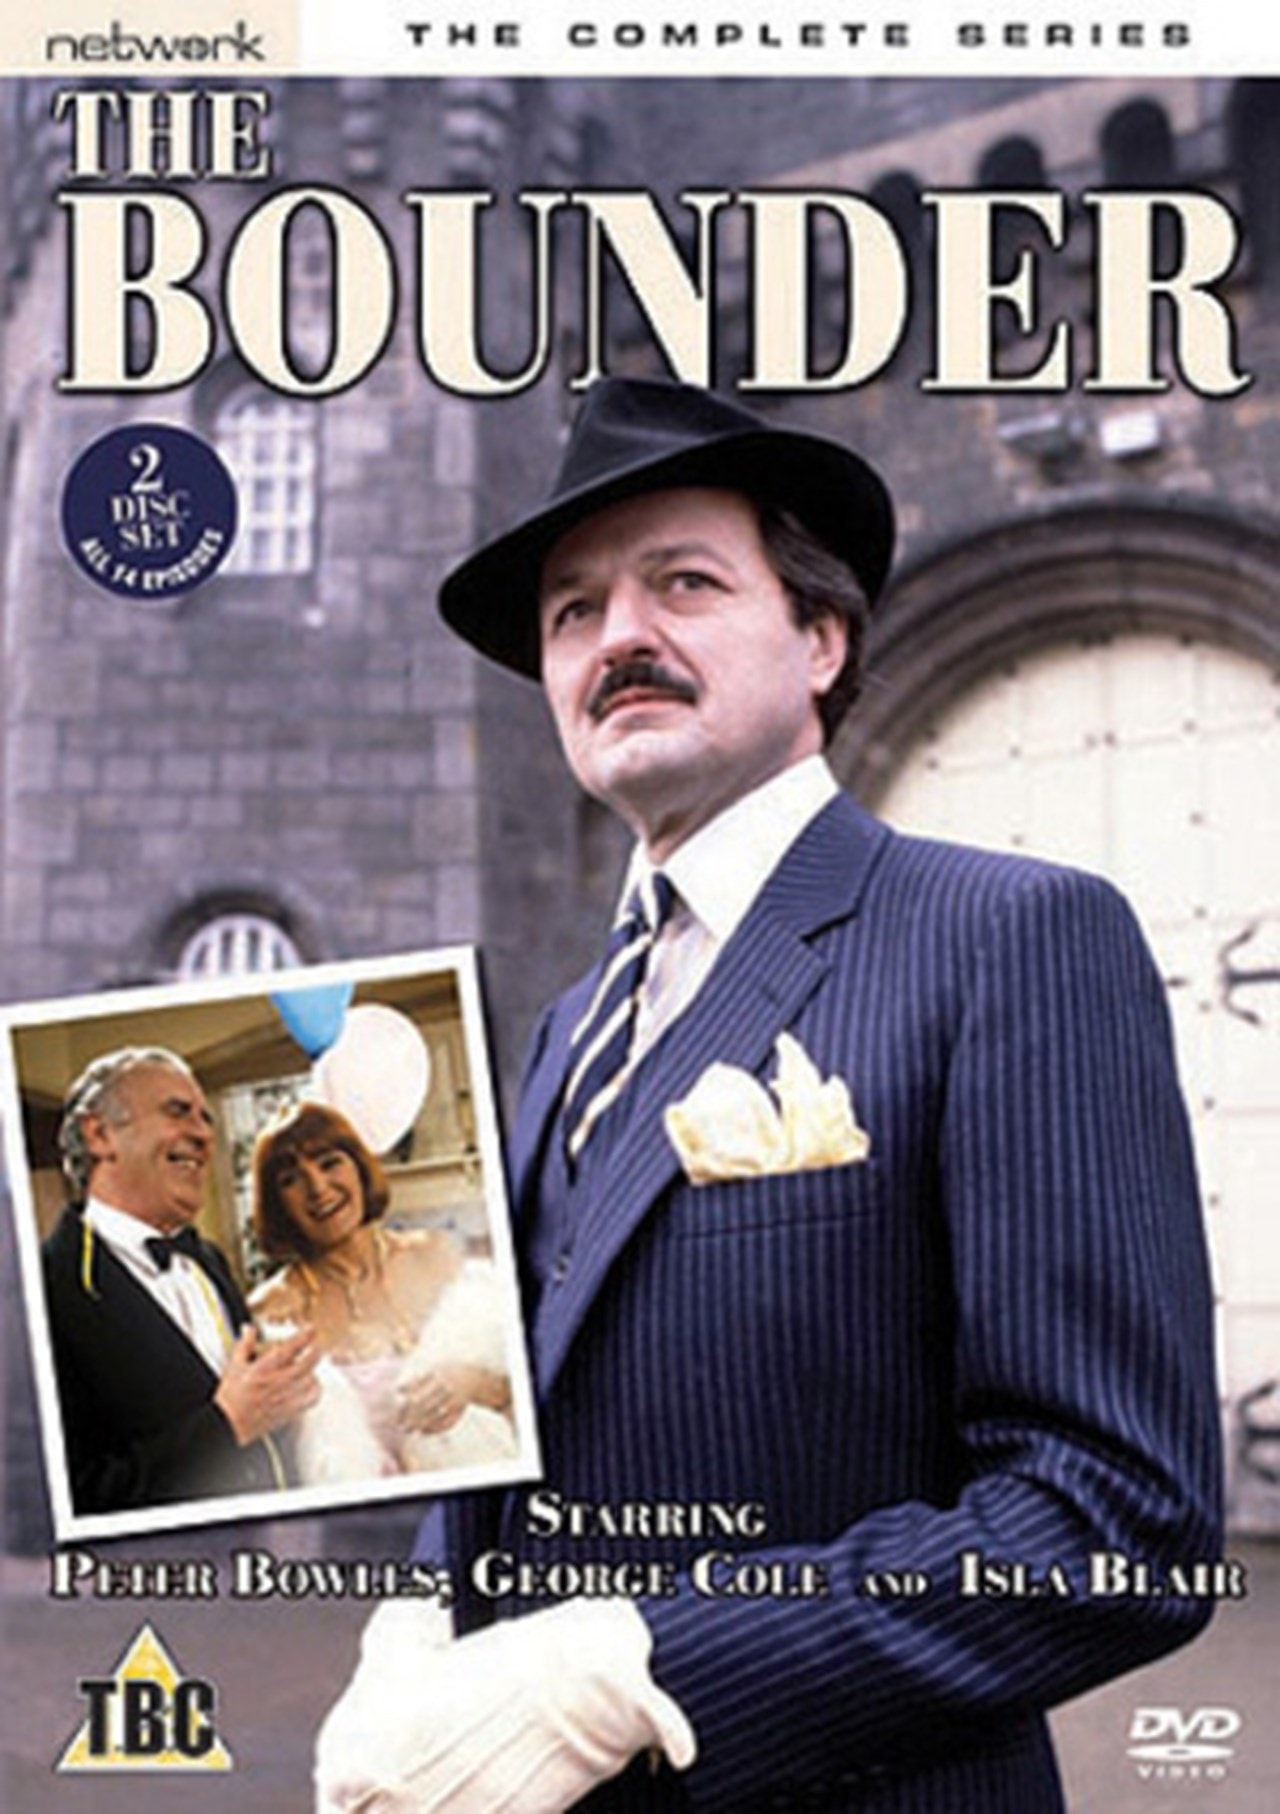 The Bounder: The Complete Series - 1